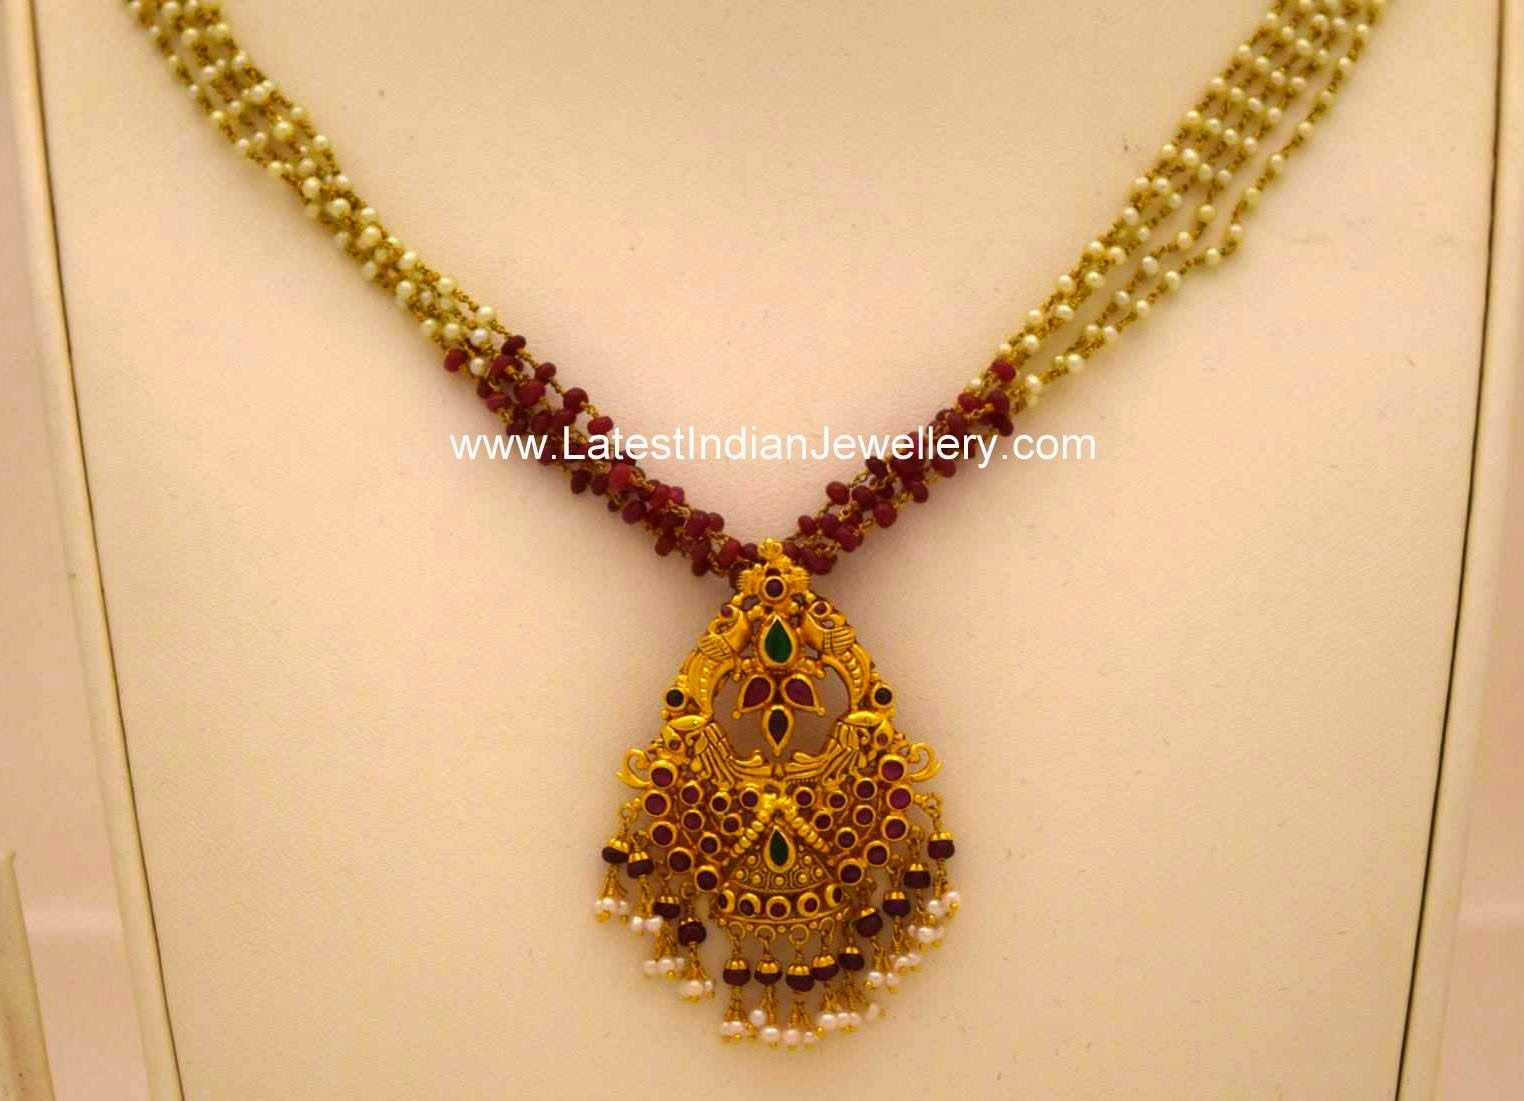 Light weight beads chain and pendant gold pendant chains and light weight beads chain gold pendant mozeypictures Gallery